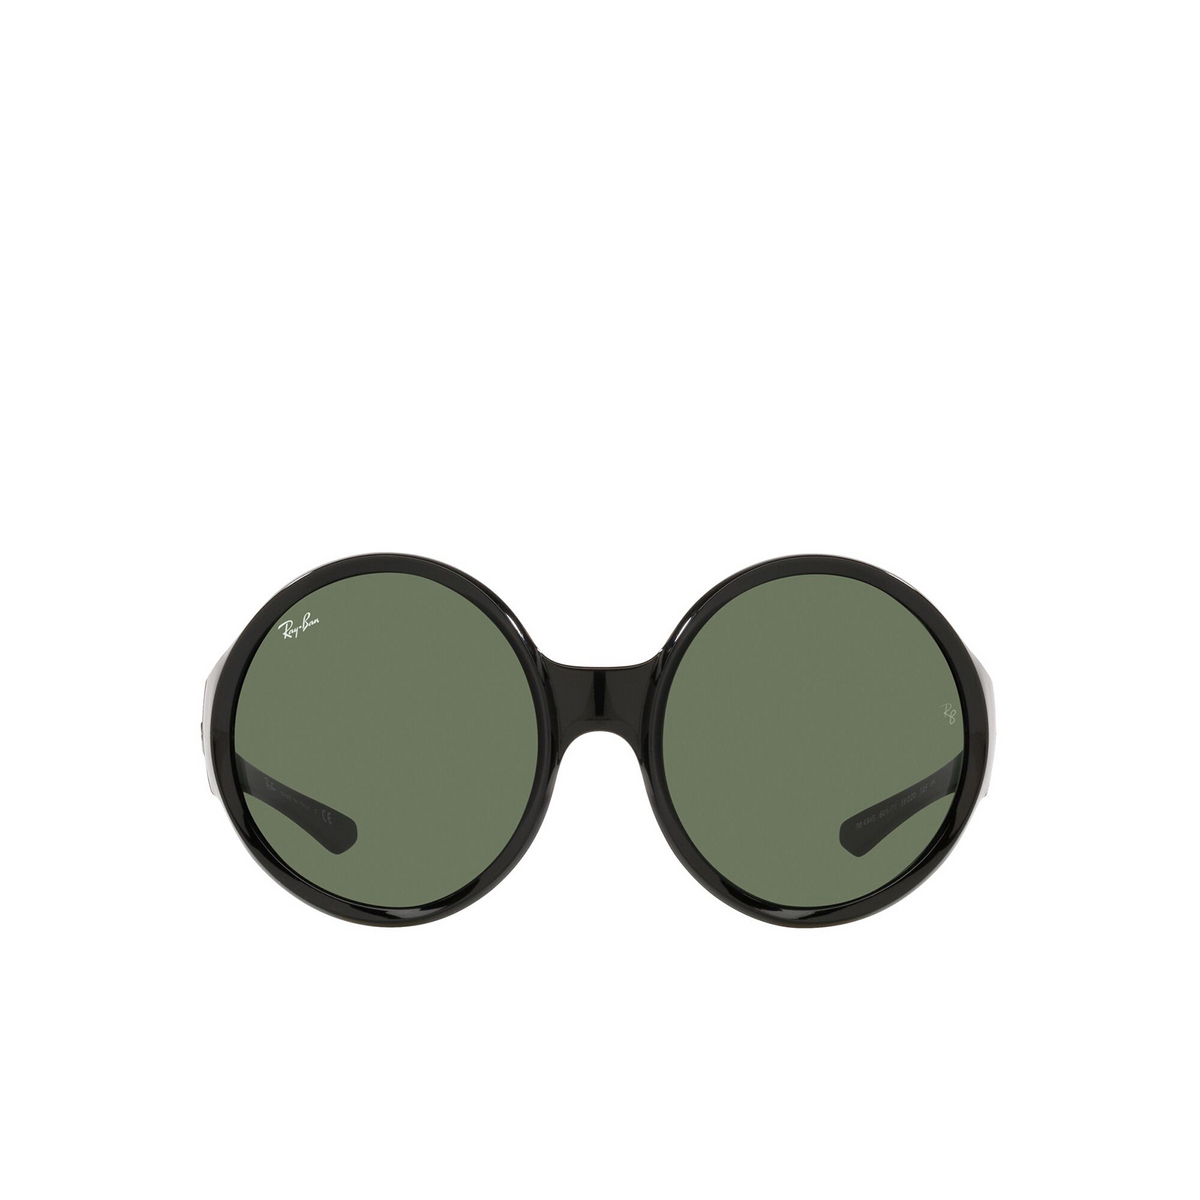 Ray-Ban® Round Sunglasses: RB4345 color Black 601/71 - front view.